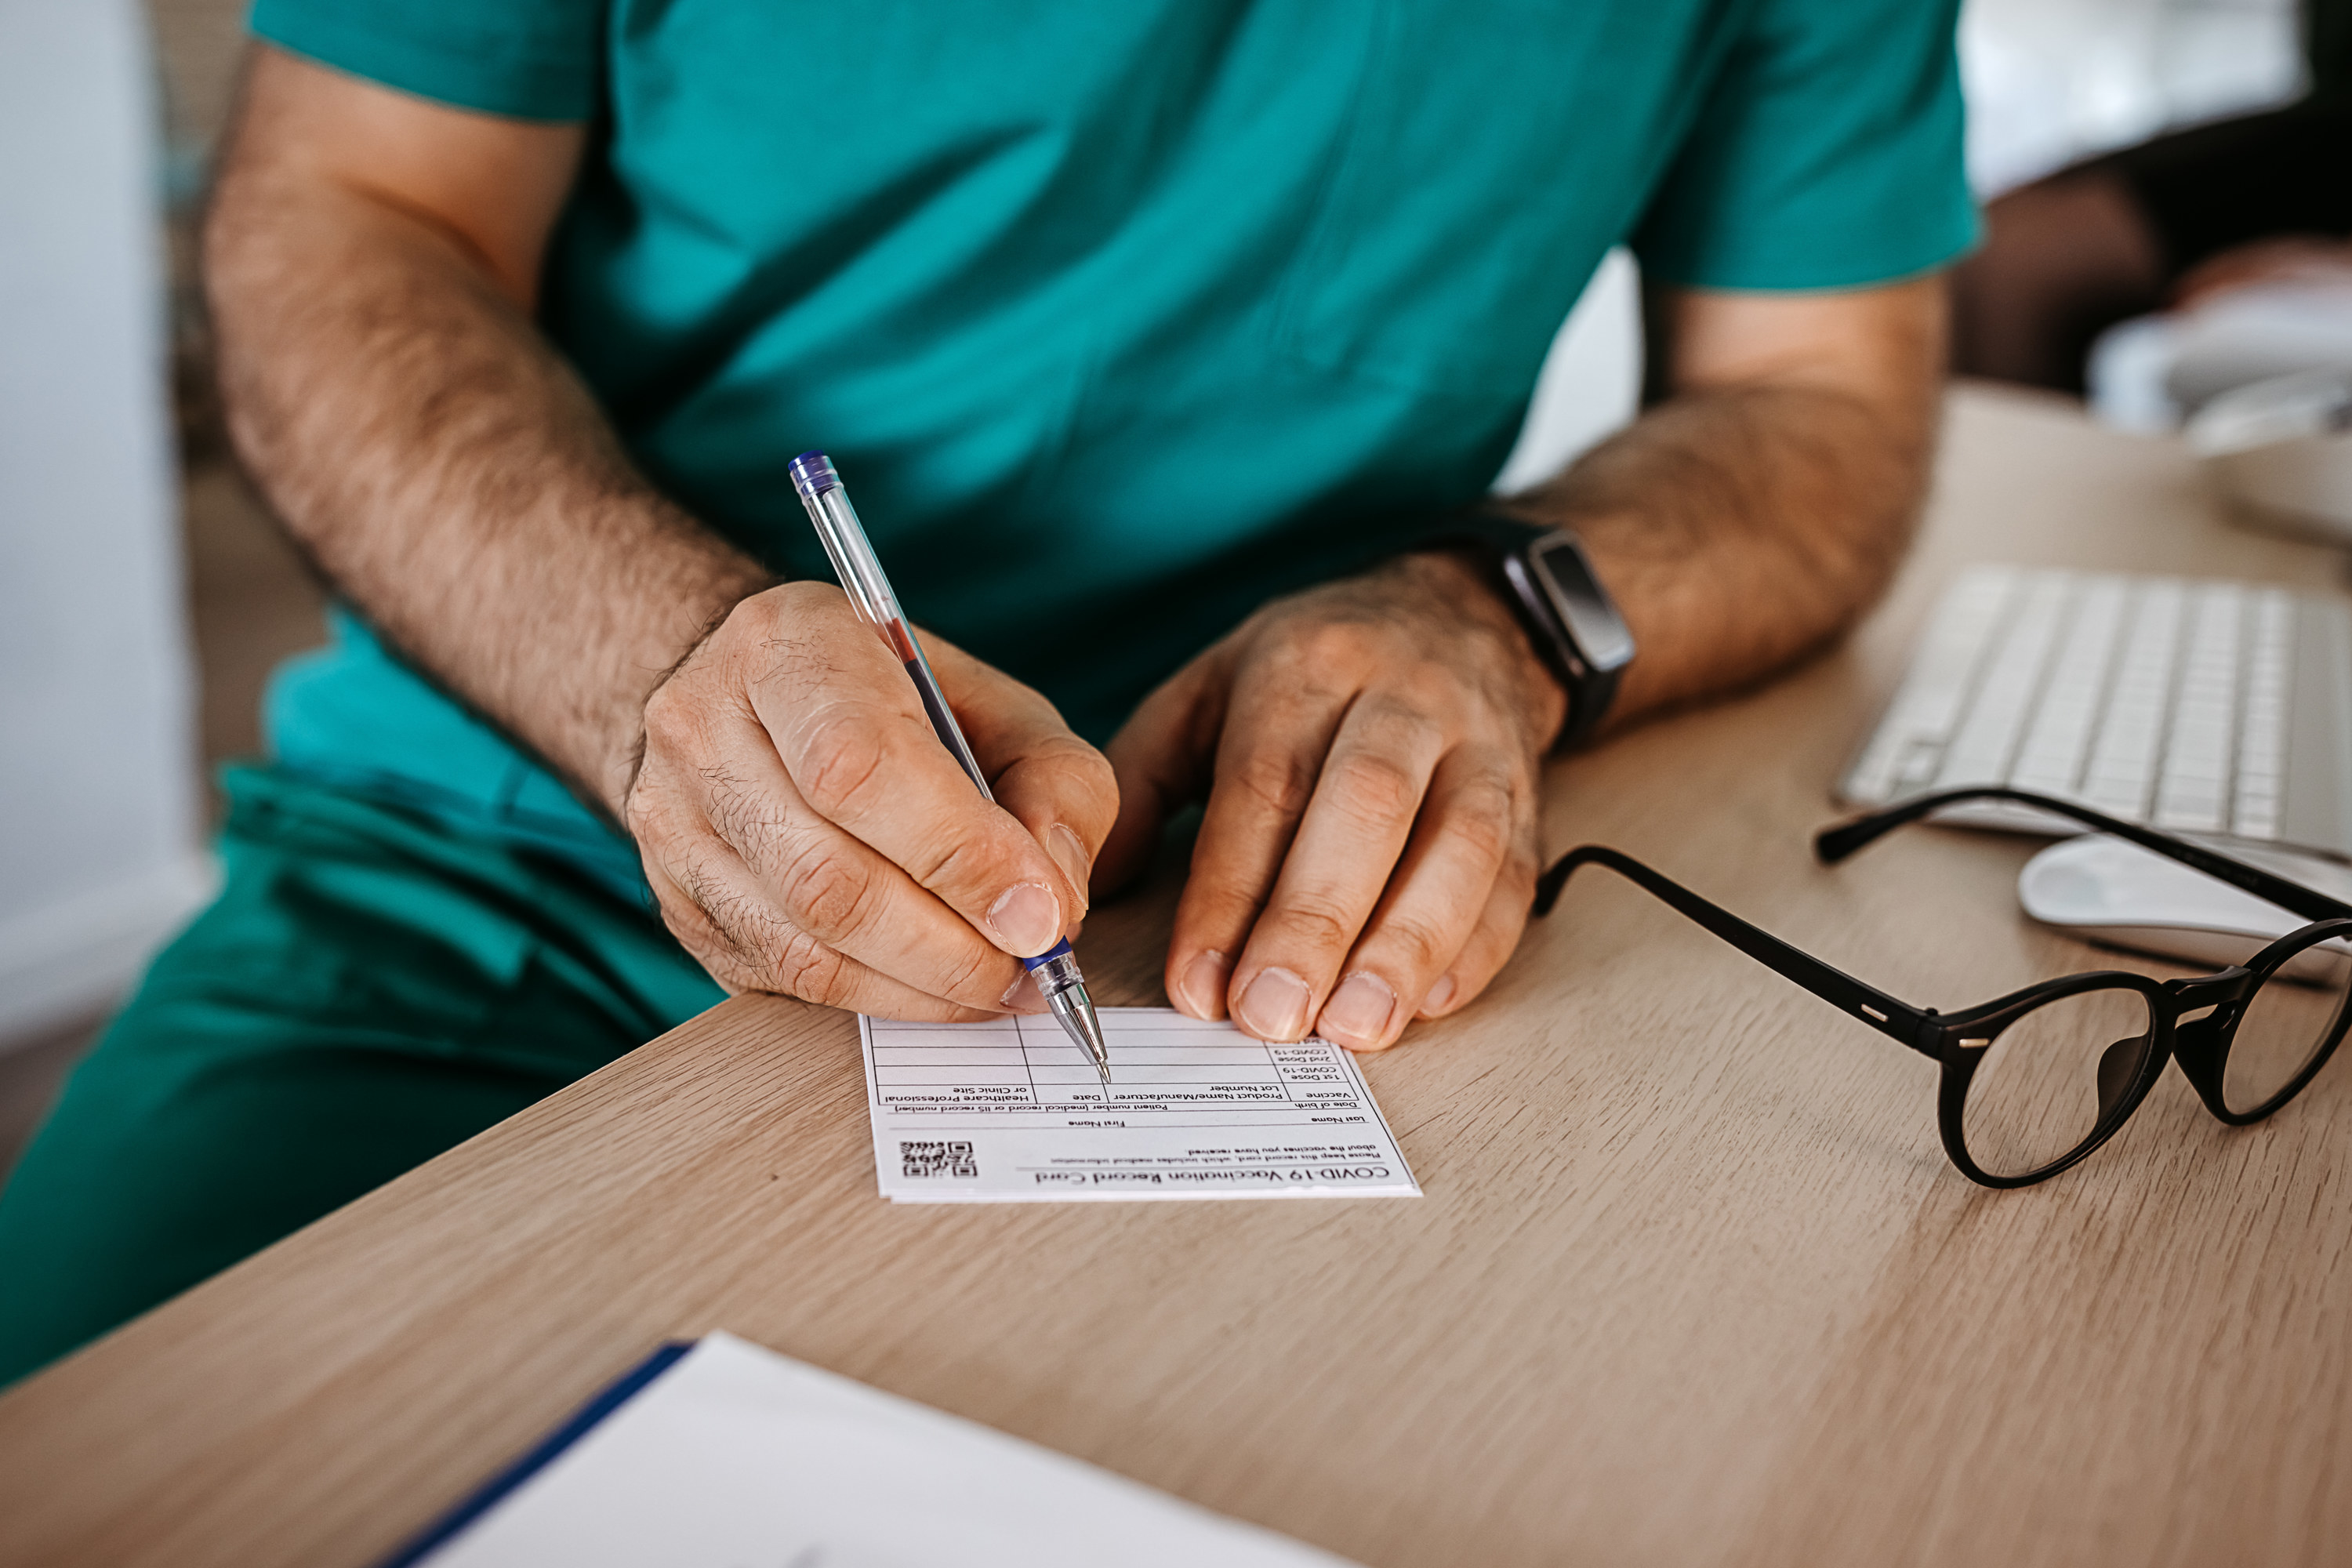 Filling out vaccine documentation